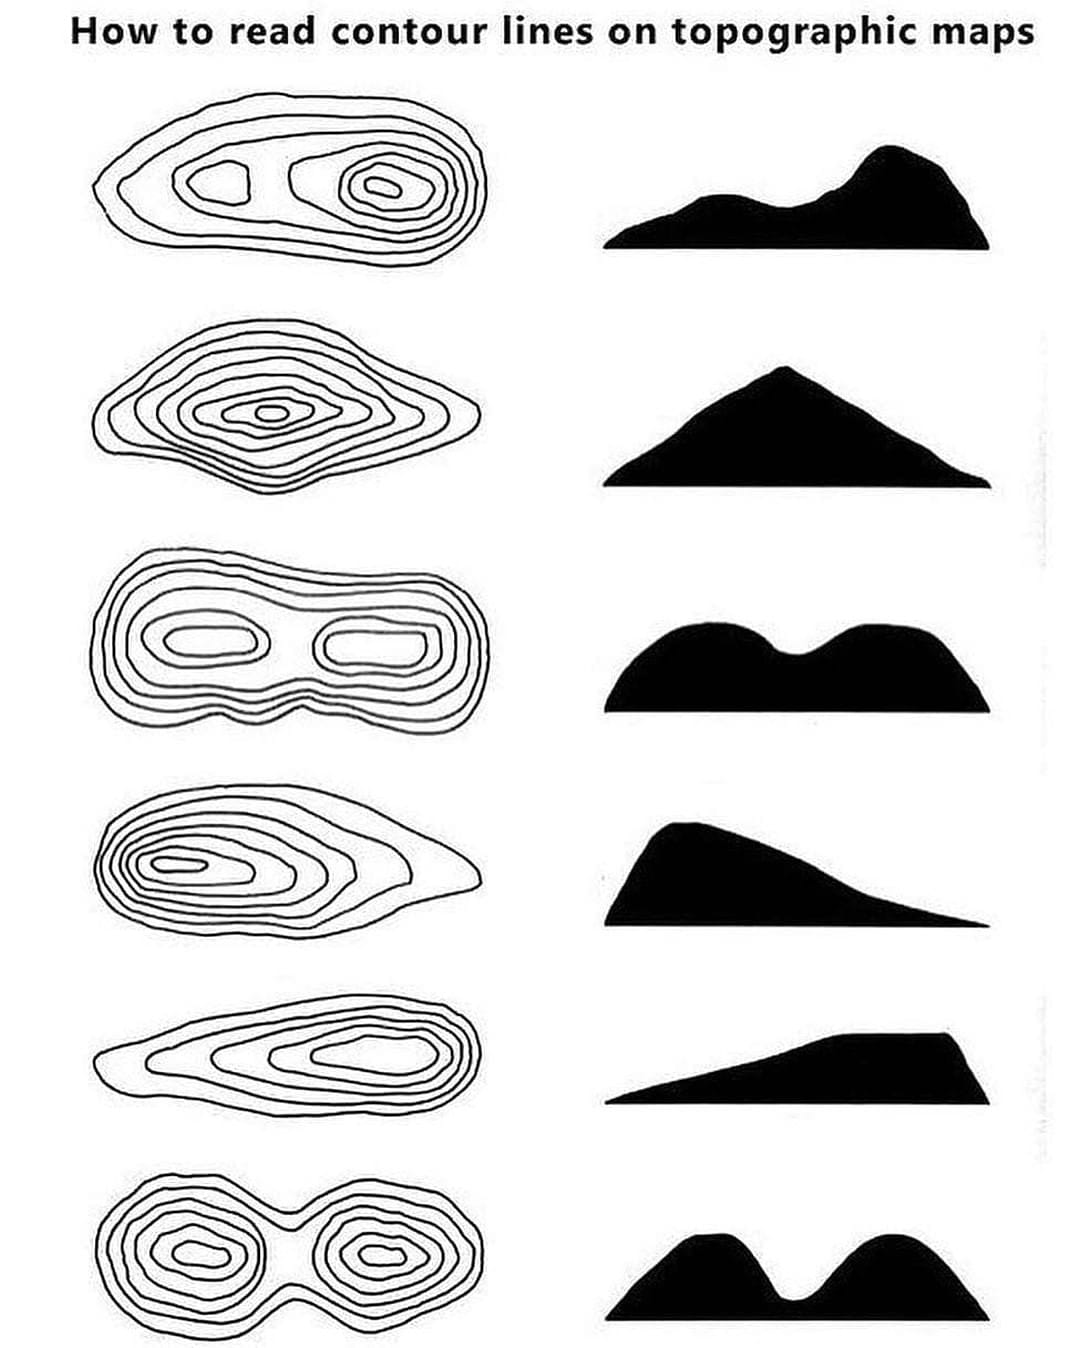 How To Read Contor Lines On Topographic Maps Coolguides